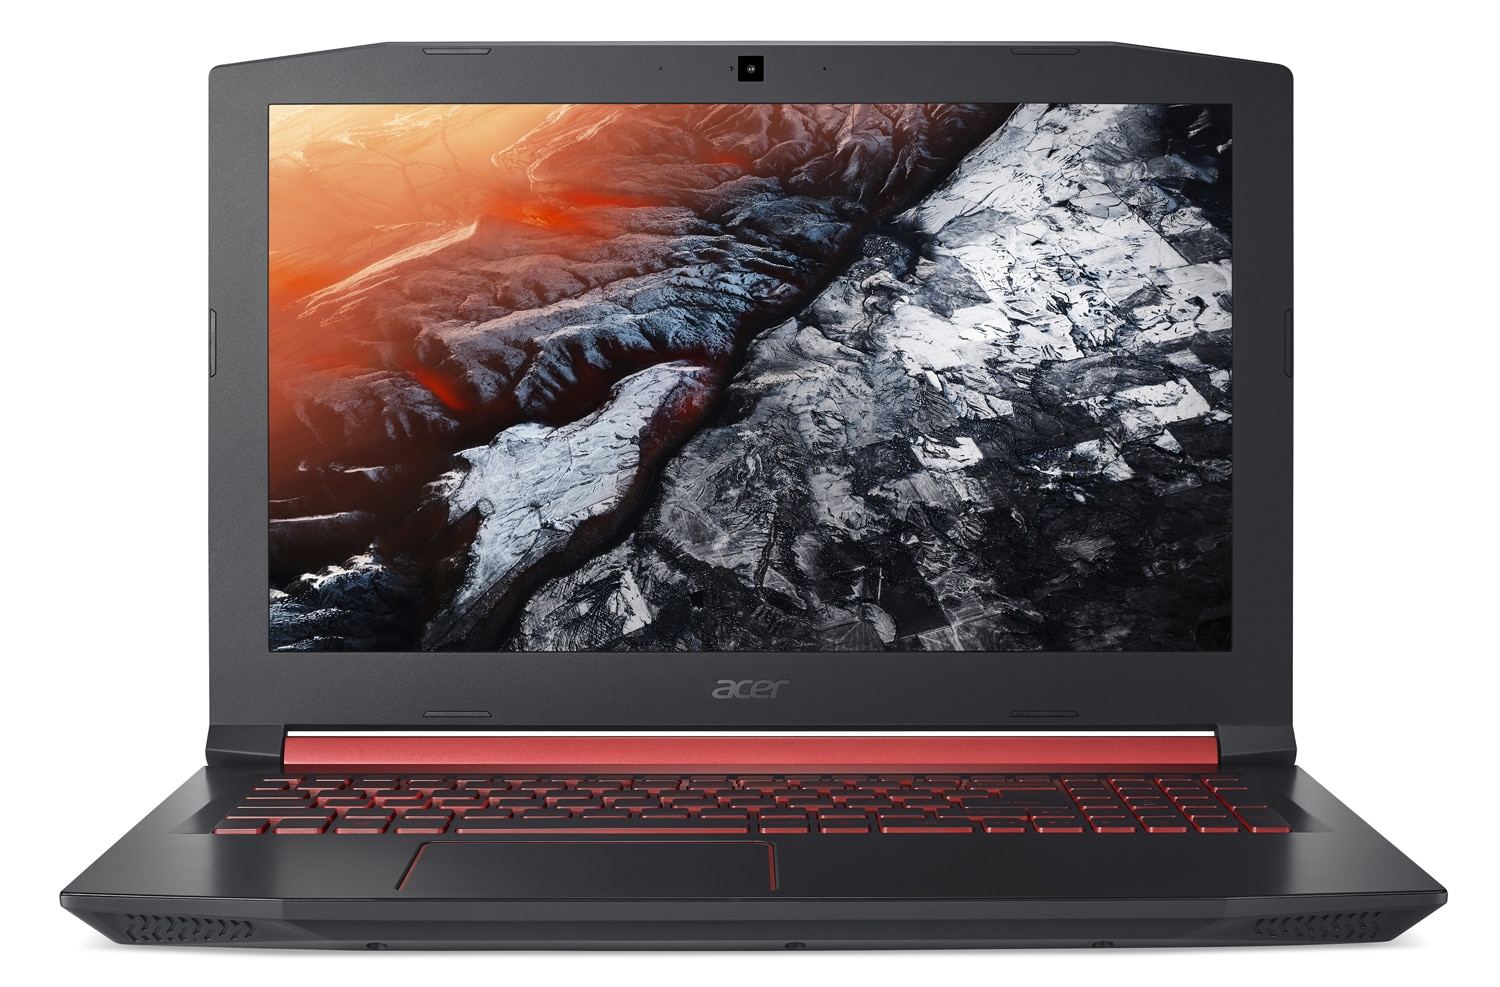 Acer Nitro AN515-41-18B6 à 699€, PC portable 15 pouces Full IPS A12 et Polaris